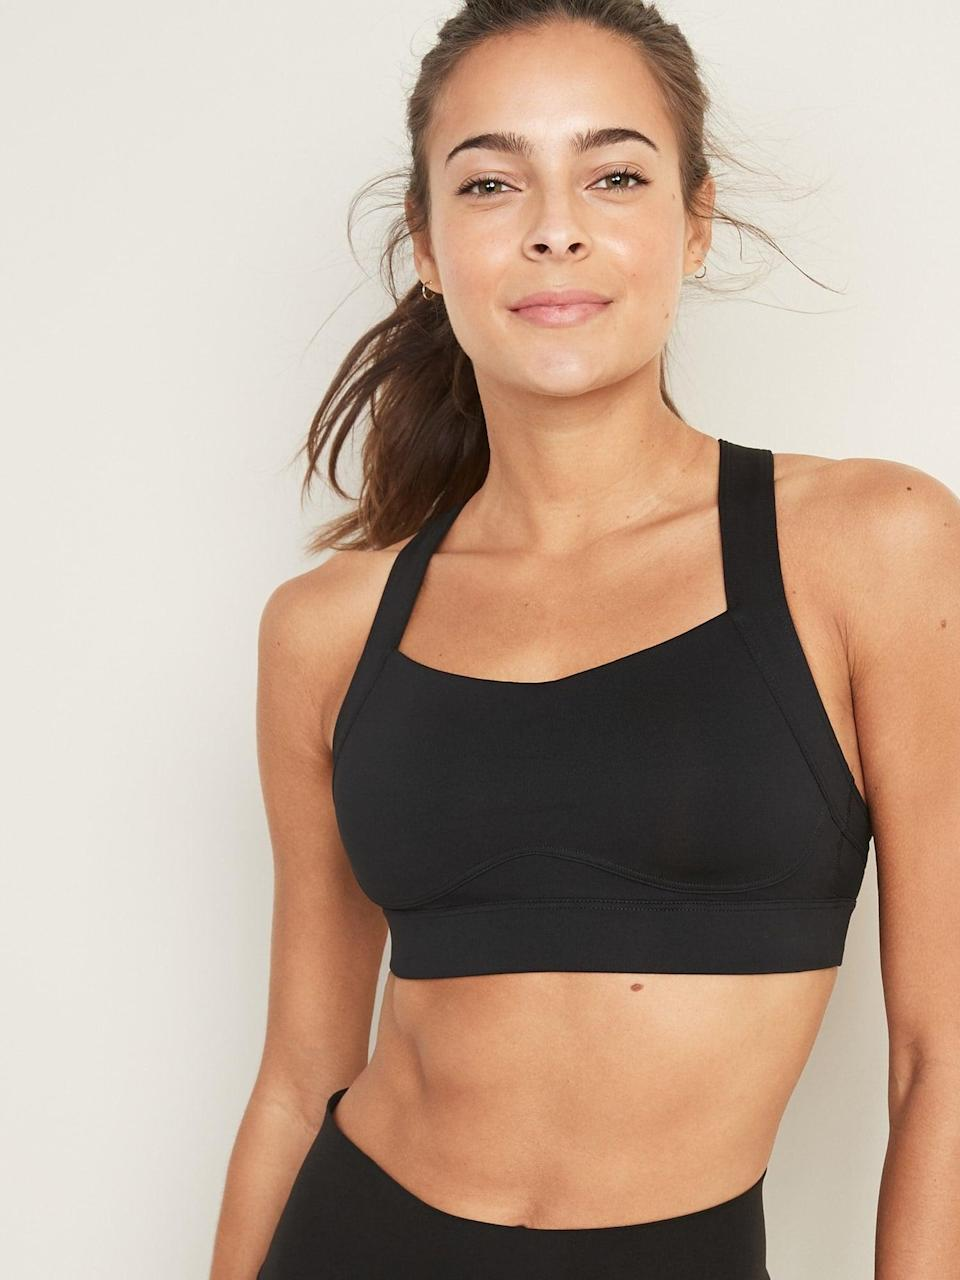 <p>The <span>High Support Cross-Back Sports Bra </span> ($20-$28, originally $33) is made of a soft jersey that offers comfortable stretch. Since it's a cross-back sports bra that gives your shoulders a ton of freedom to move, I'd wear this for boxing.</p>